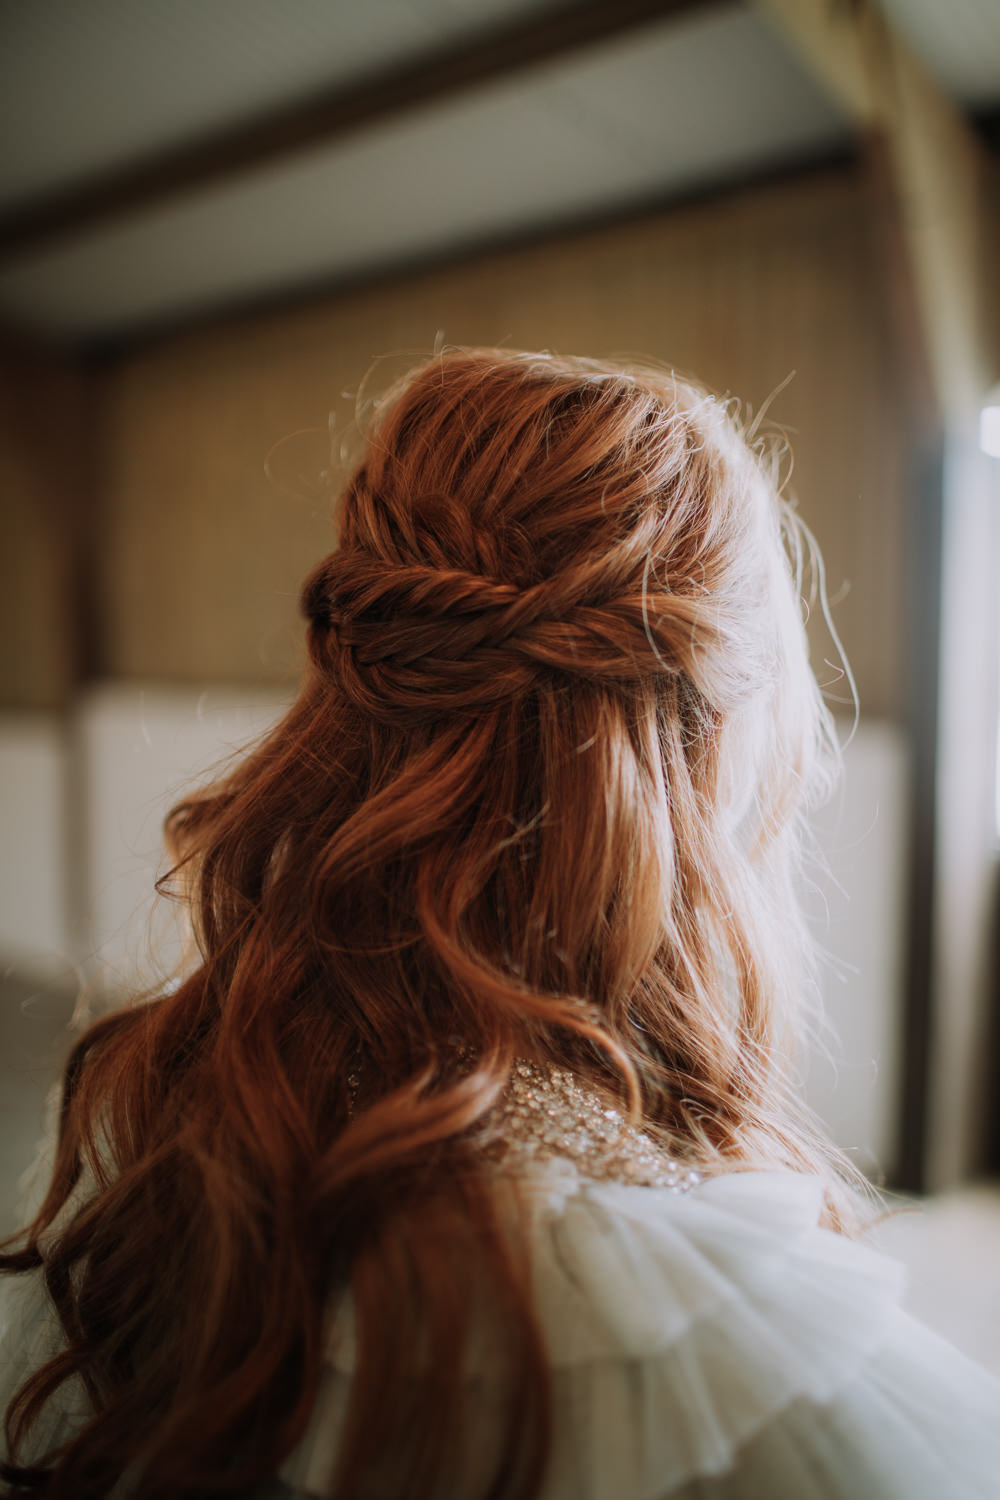 Hair Bride Bridal Style Half Up Do Braids Plaits Industrial Luxe Wedding Ideas Balloon Installation Ayelle Photography